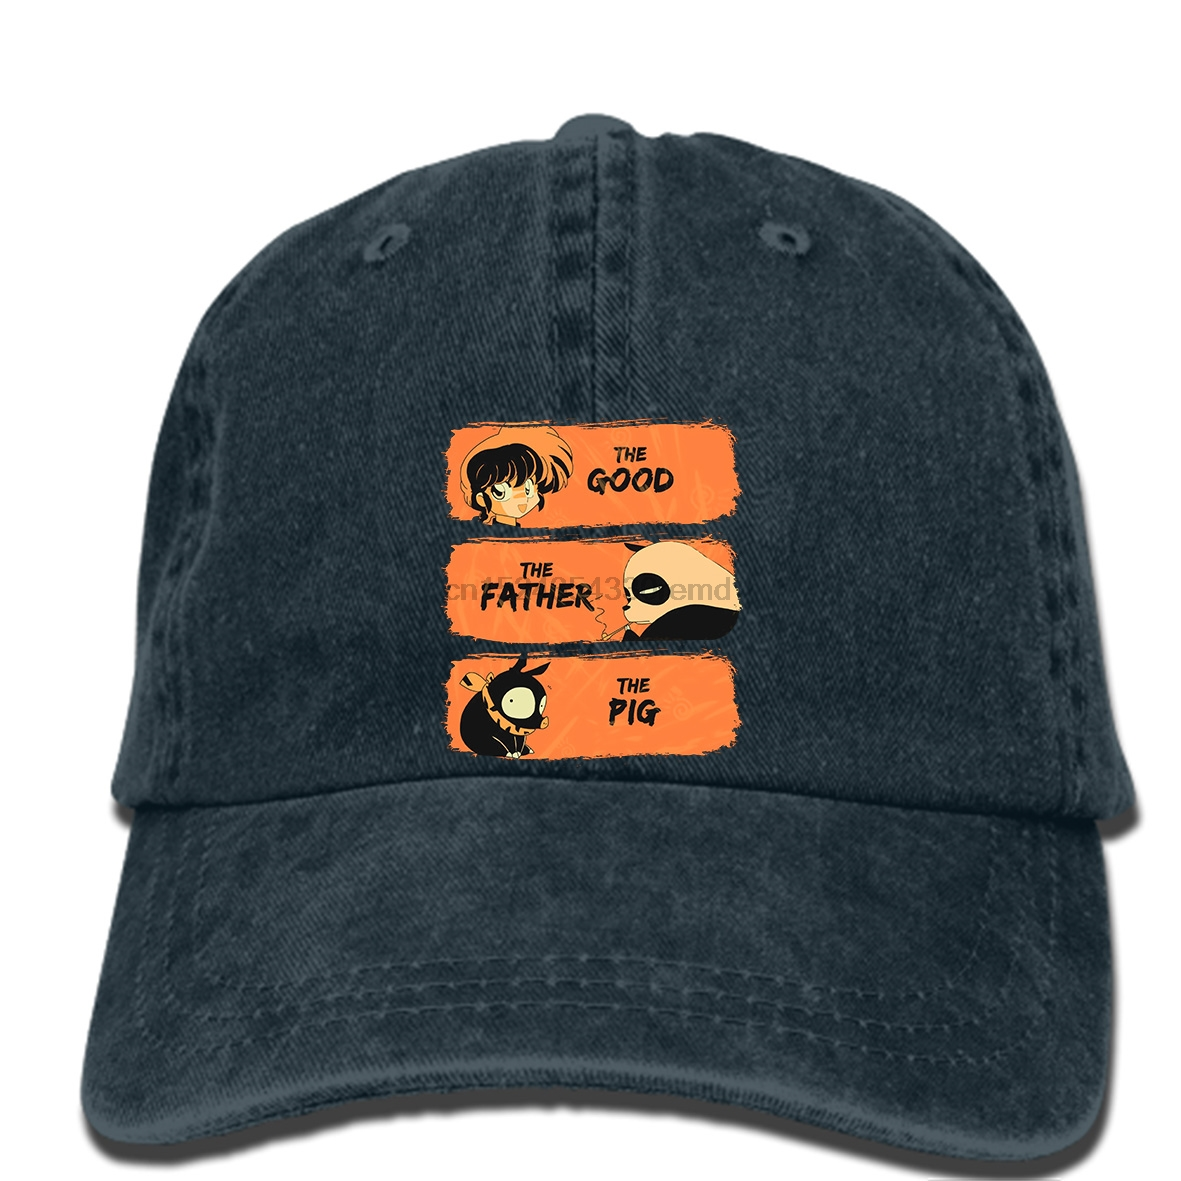 Men Hat Baseball-Caps Women Cap Hip-Hop The Print Good-The-Father-The-Pig Ranma New-Style